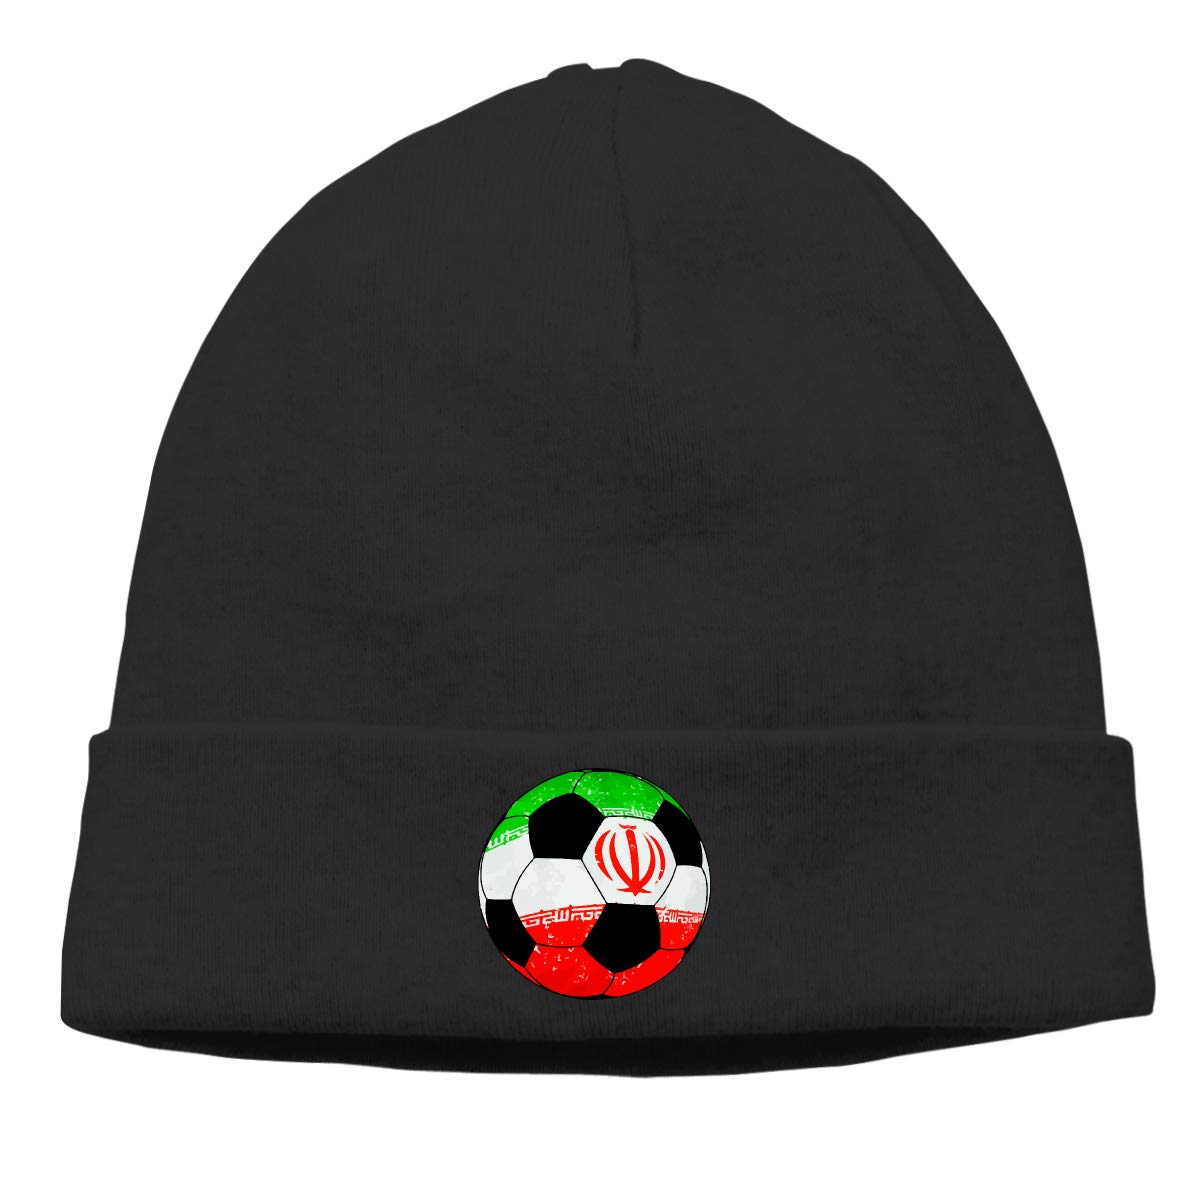 Iran Football Soccer Unisex Solid Color Beanie Hat Stretchy /& Soft Winter Cap Thin